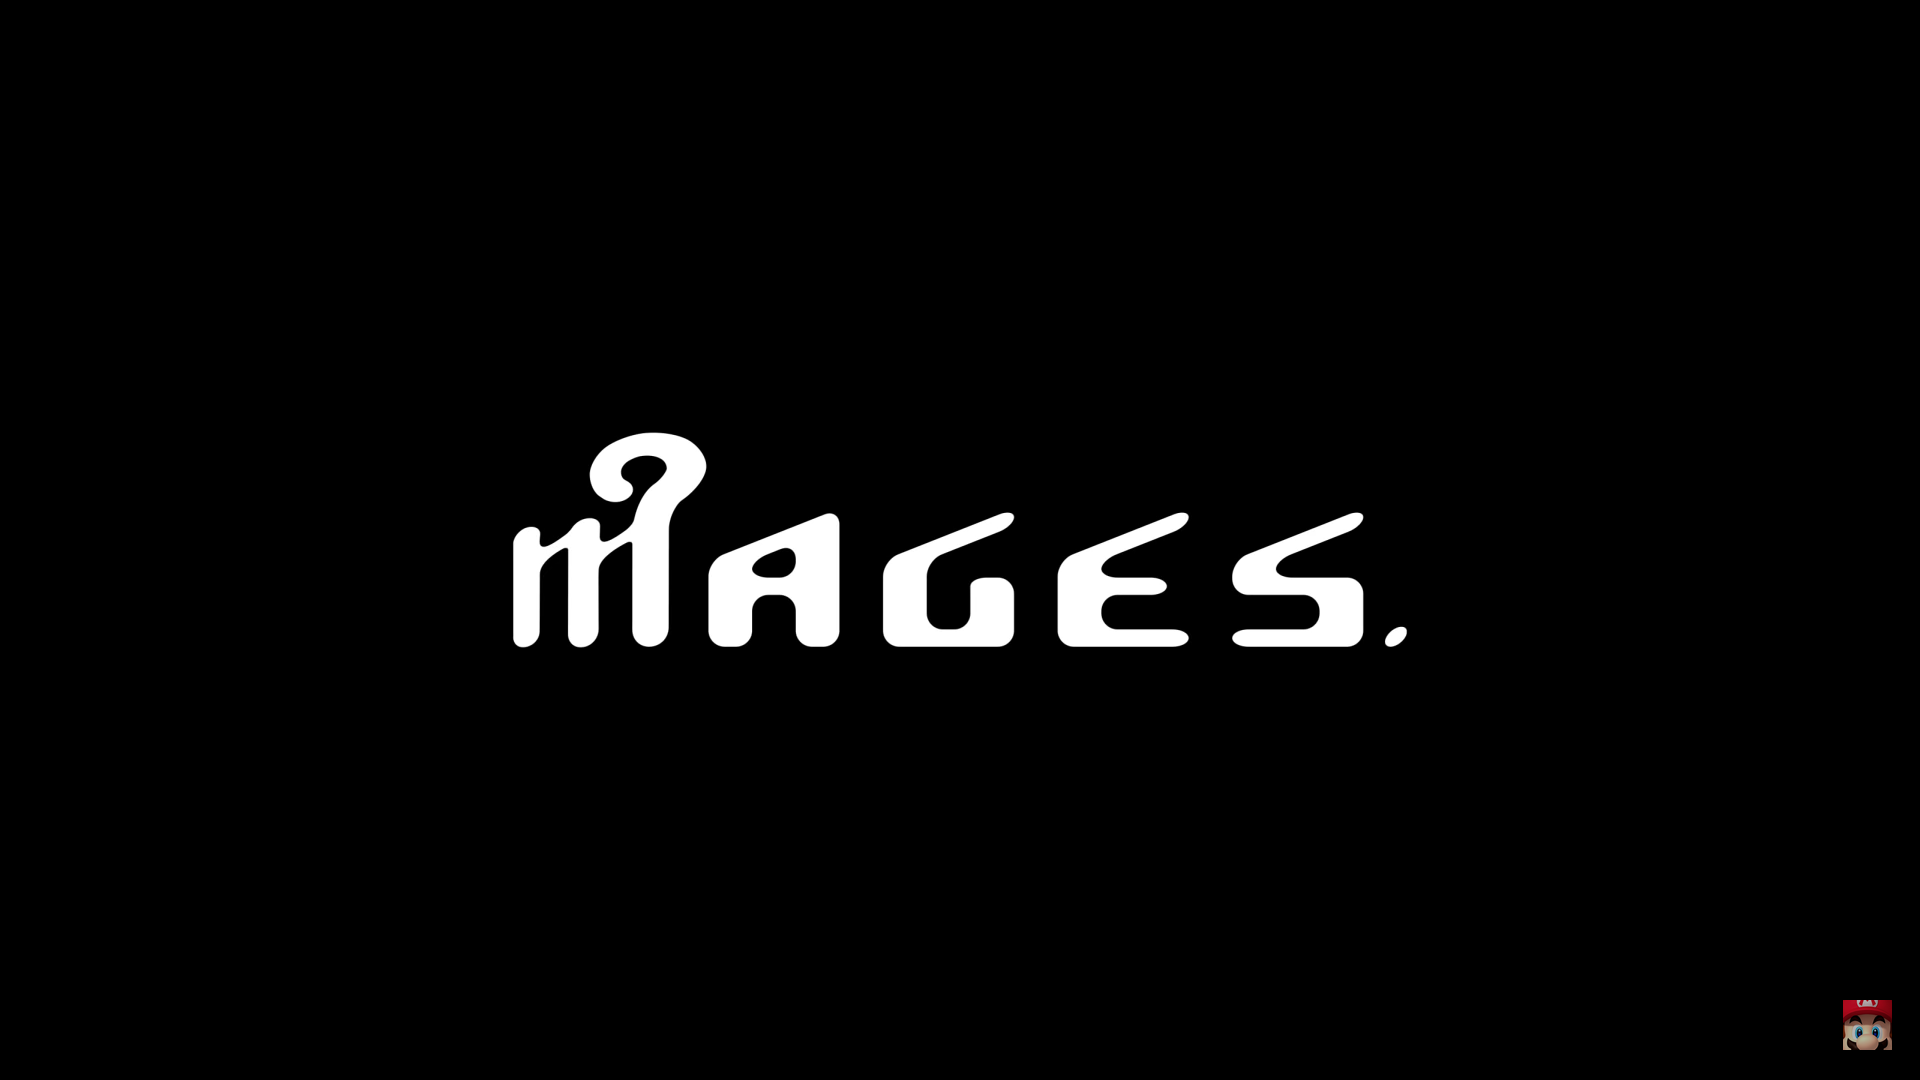 Mages To Separate From Kadokawa Group, Absorb 5pb Brand